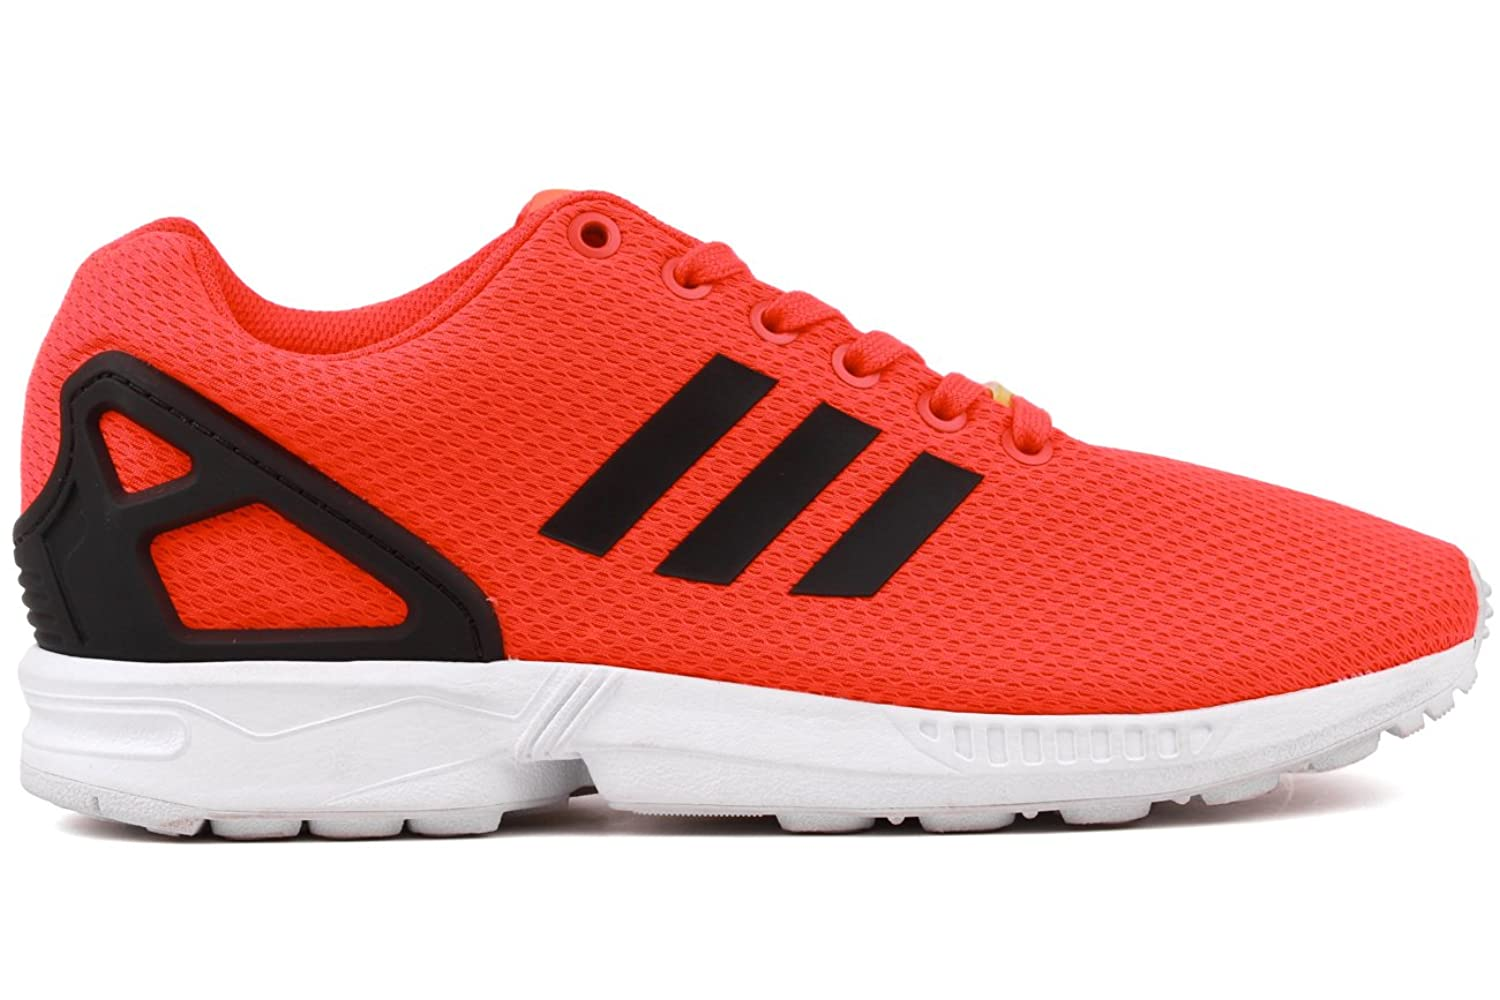 Adidas Men's ZX Flux New Limited Edition Energy Color Sneakers adidas samoa kids casual sneakers